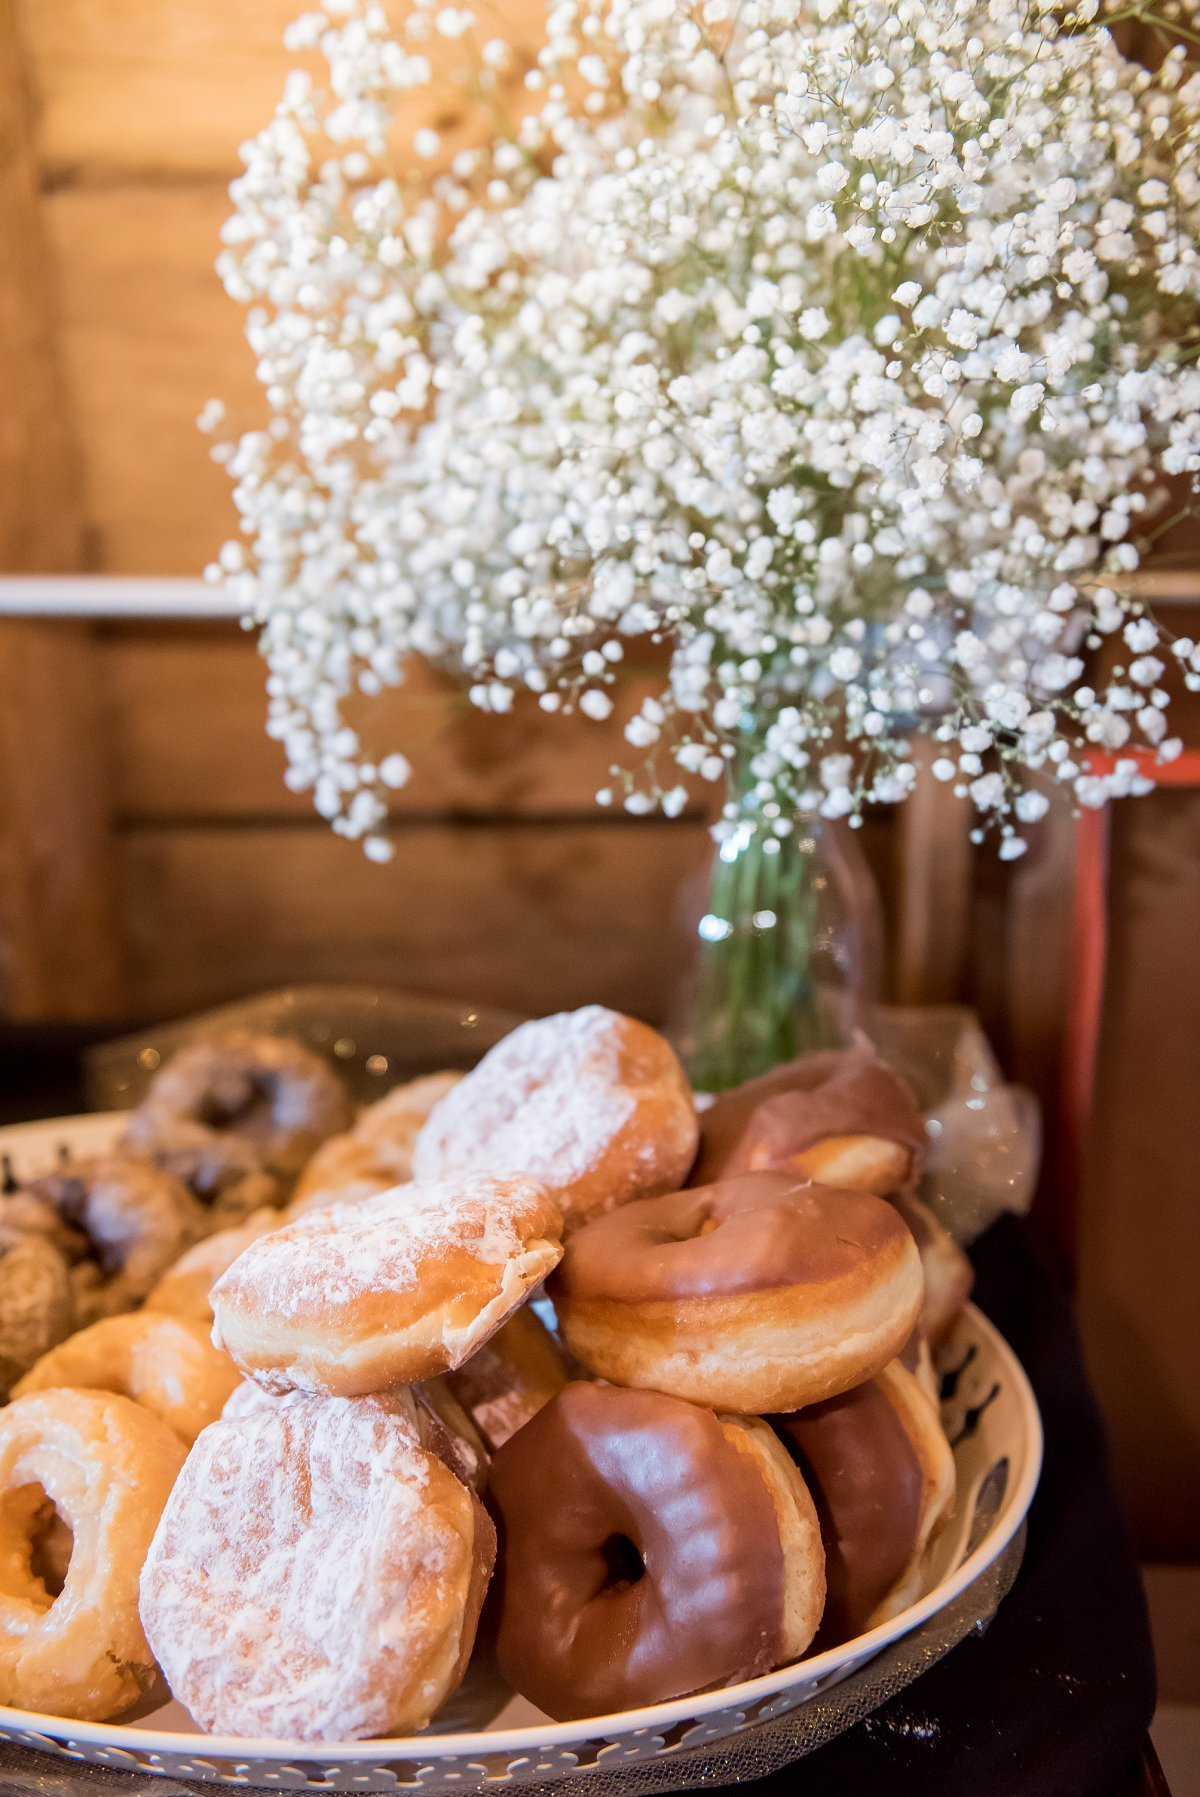 Donuts at a breakfast wedding reception brunch. Modern trends and cool vibes. Sandy's donuts Fargo. www.kriskandel.com